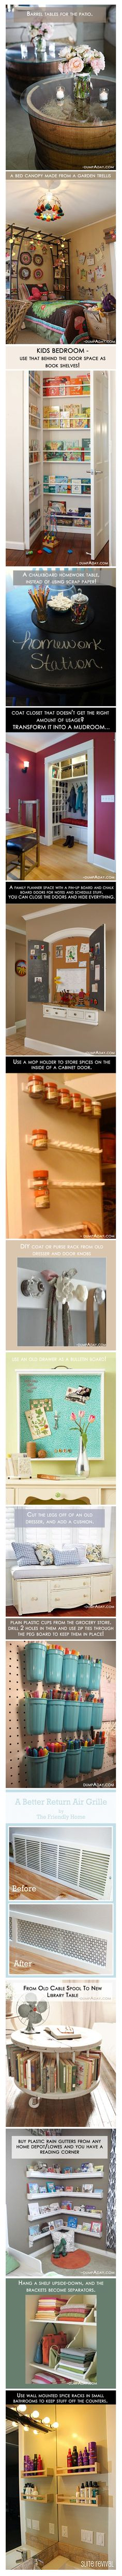 16 Amazing Do It Yourself Home Ideas...so many great ideas!